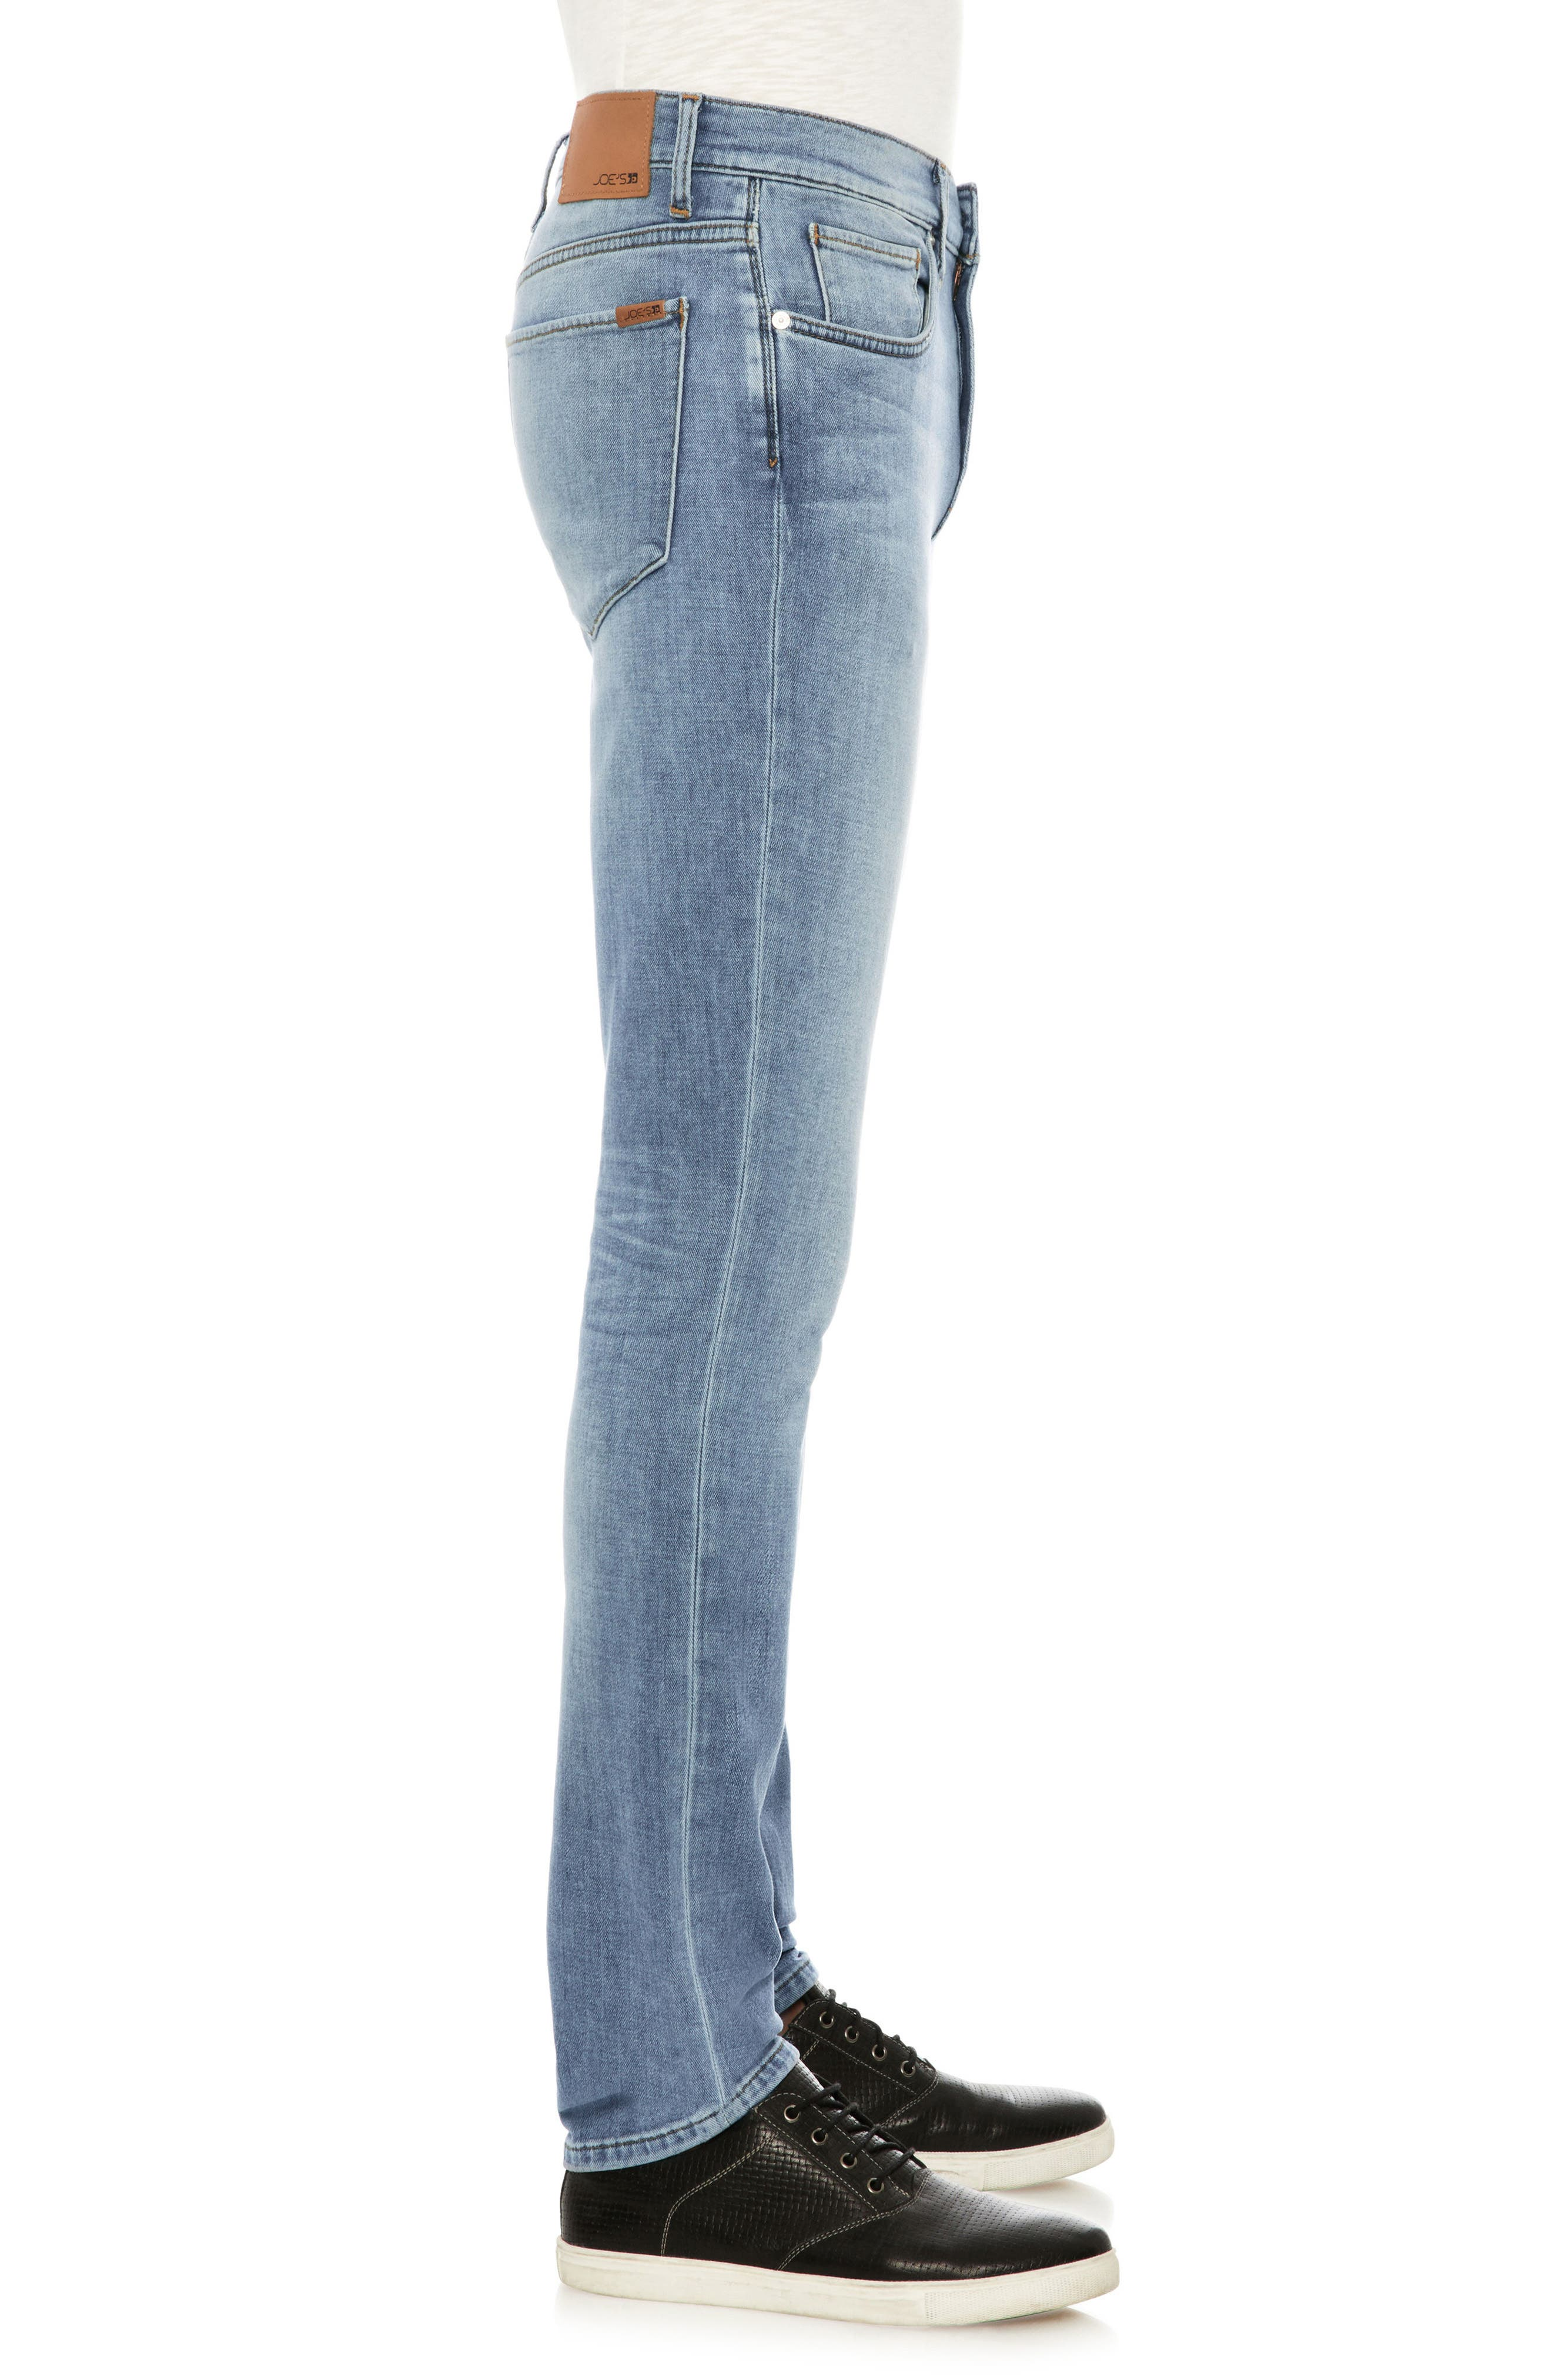 Legend Skinny Fit Jeans,                             Alternate thumbnail 3, color,                             Avery